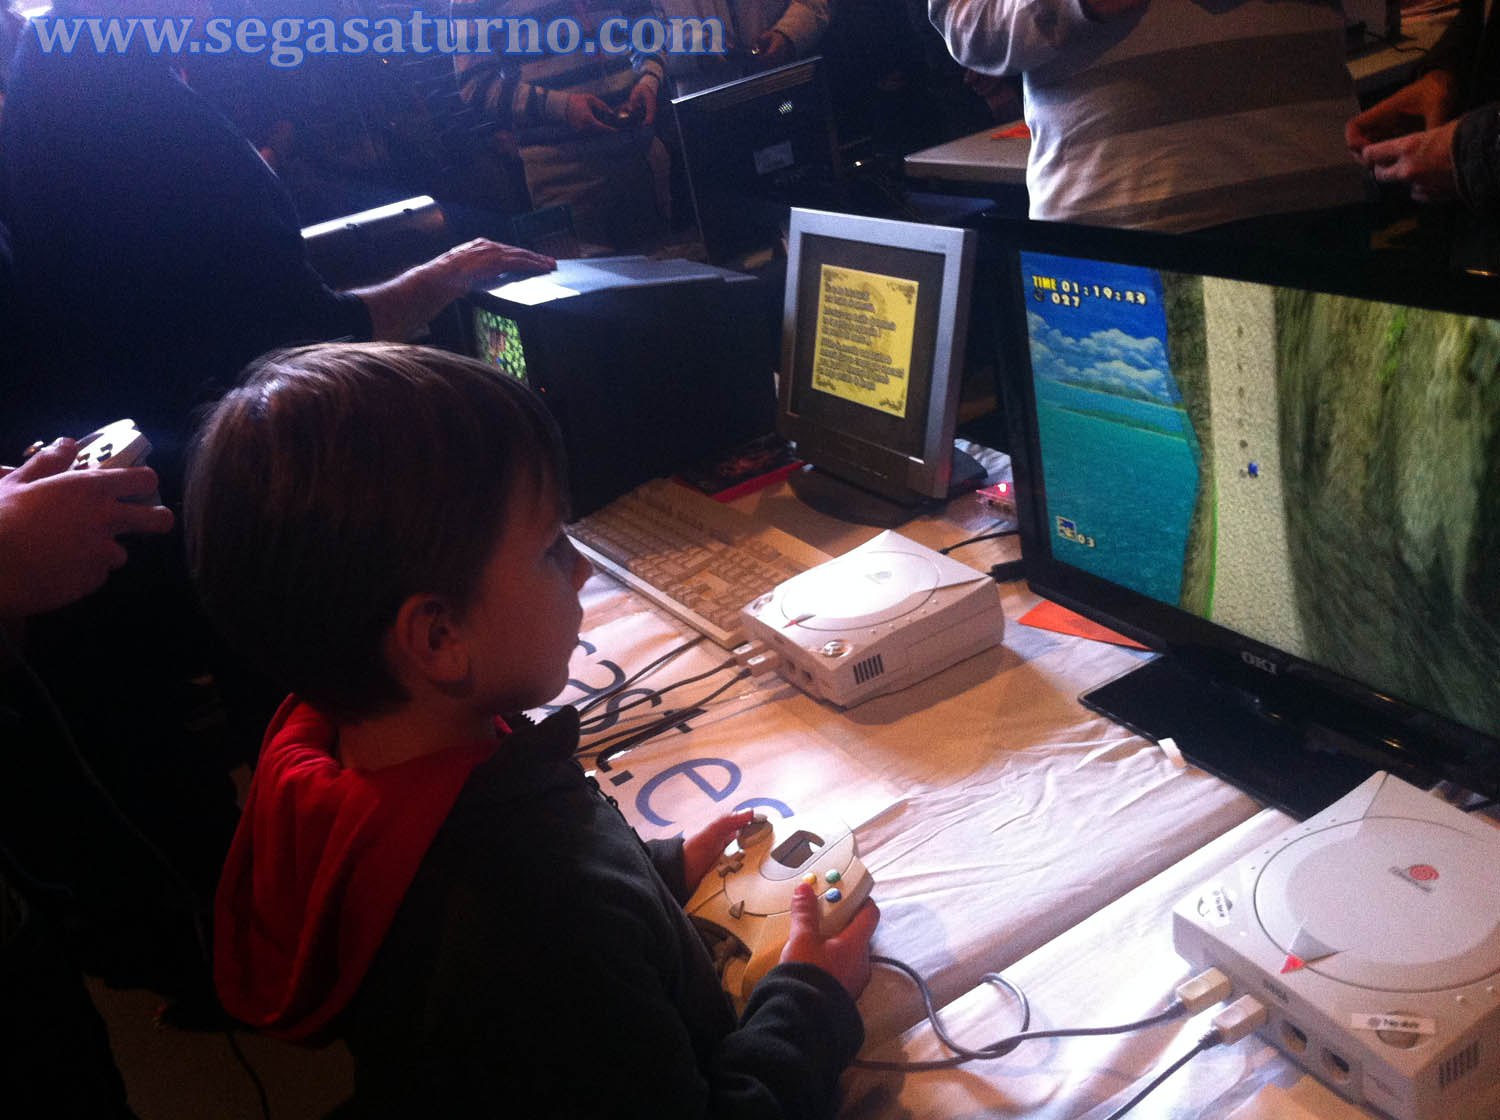 retromadrid retro madrid sega saturno dreamcast